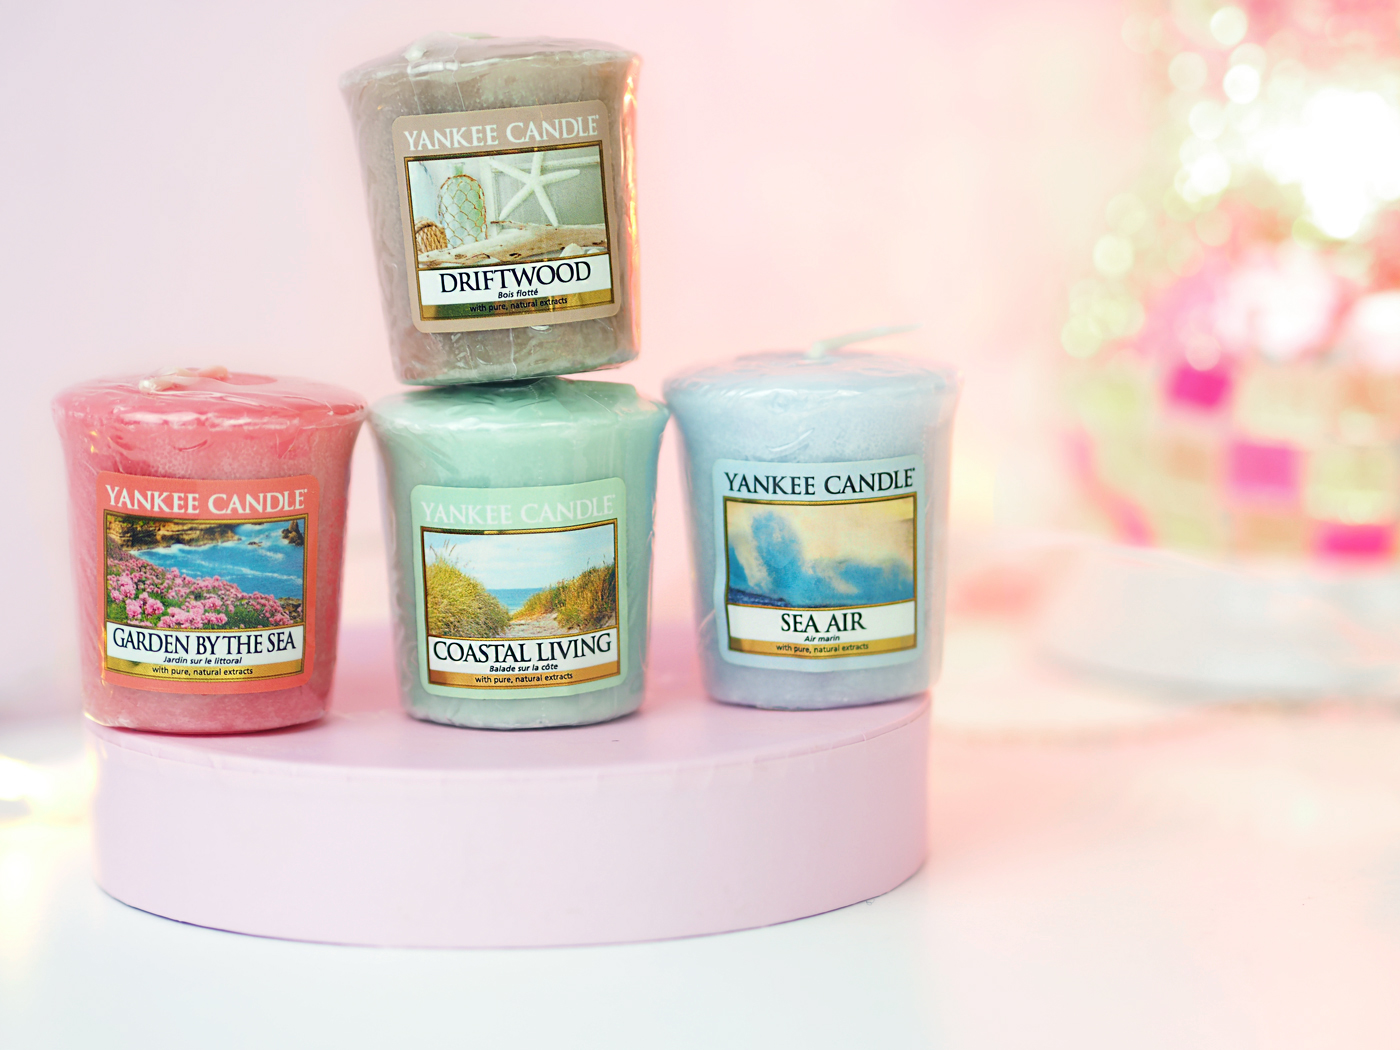 Yankee Candle Coastal Living Collection Review